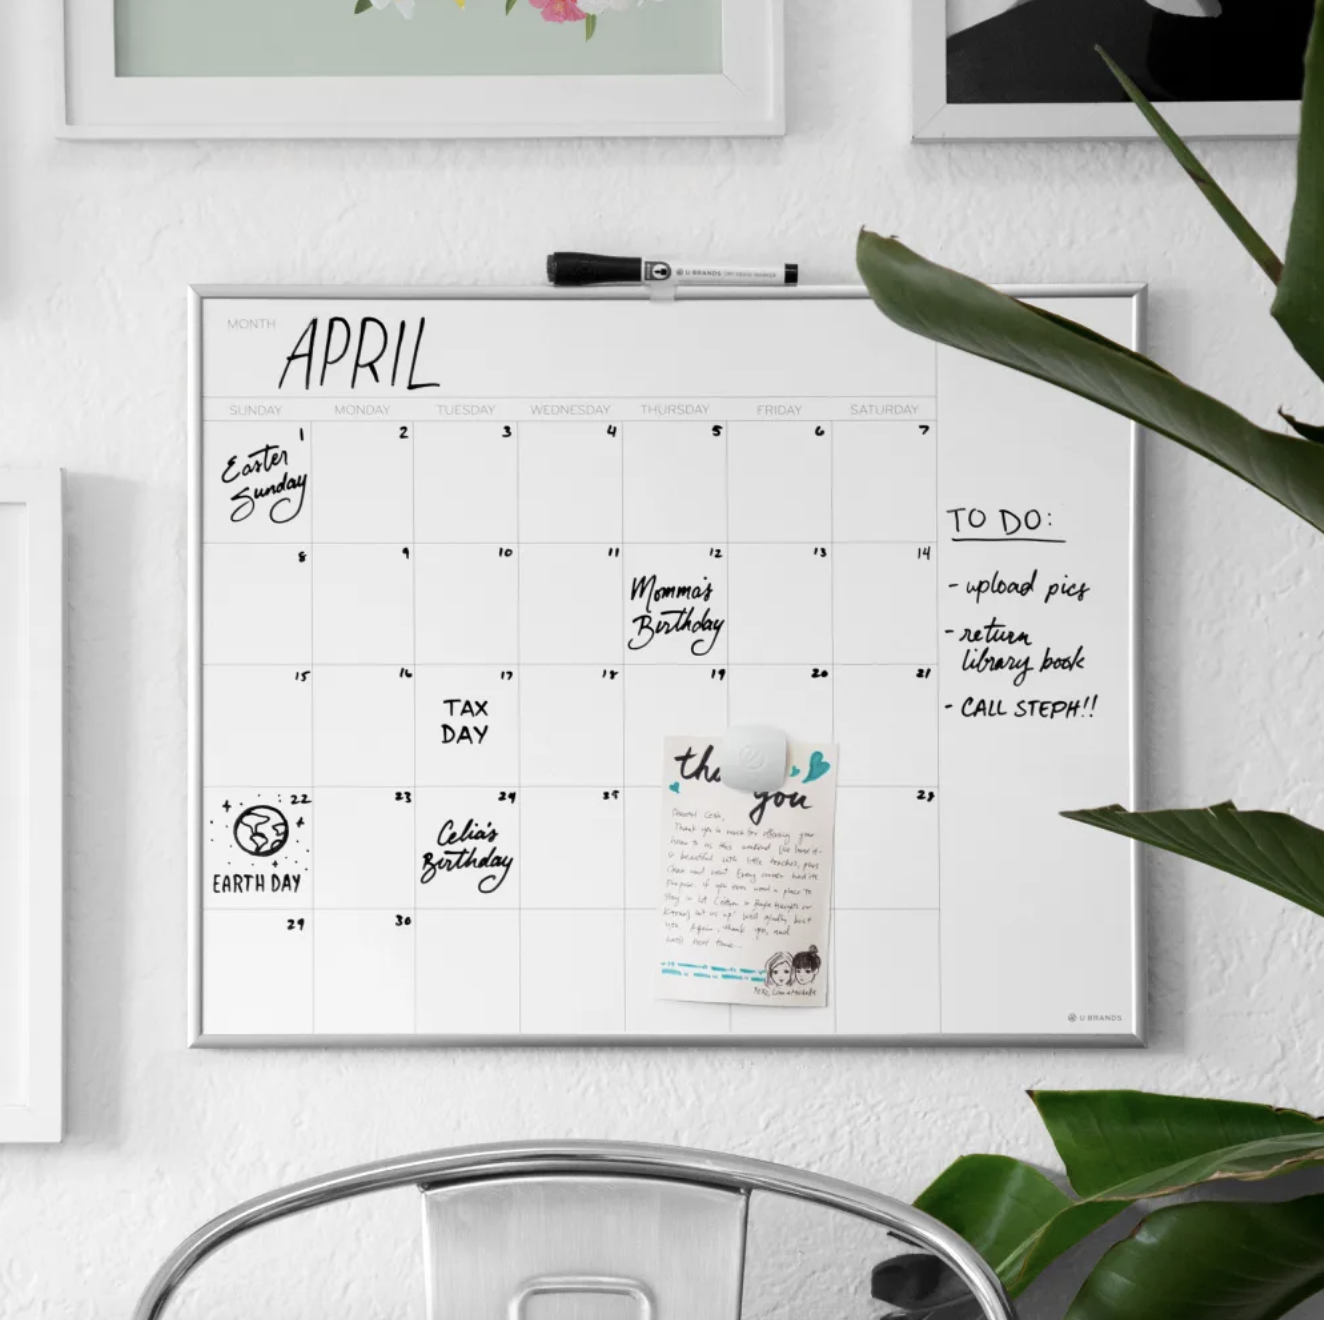 the U Brands Magnetic Dry-Erase White Calendar Whiteboard mounted on a wall with written notes on it